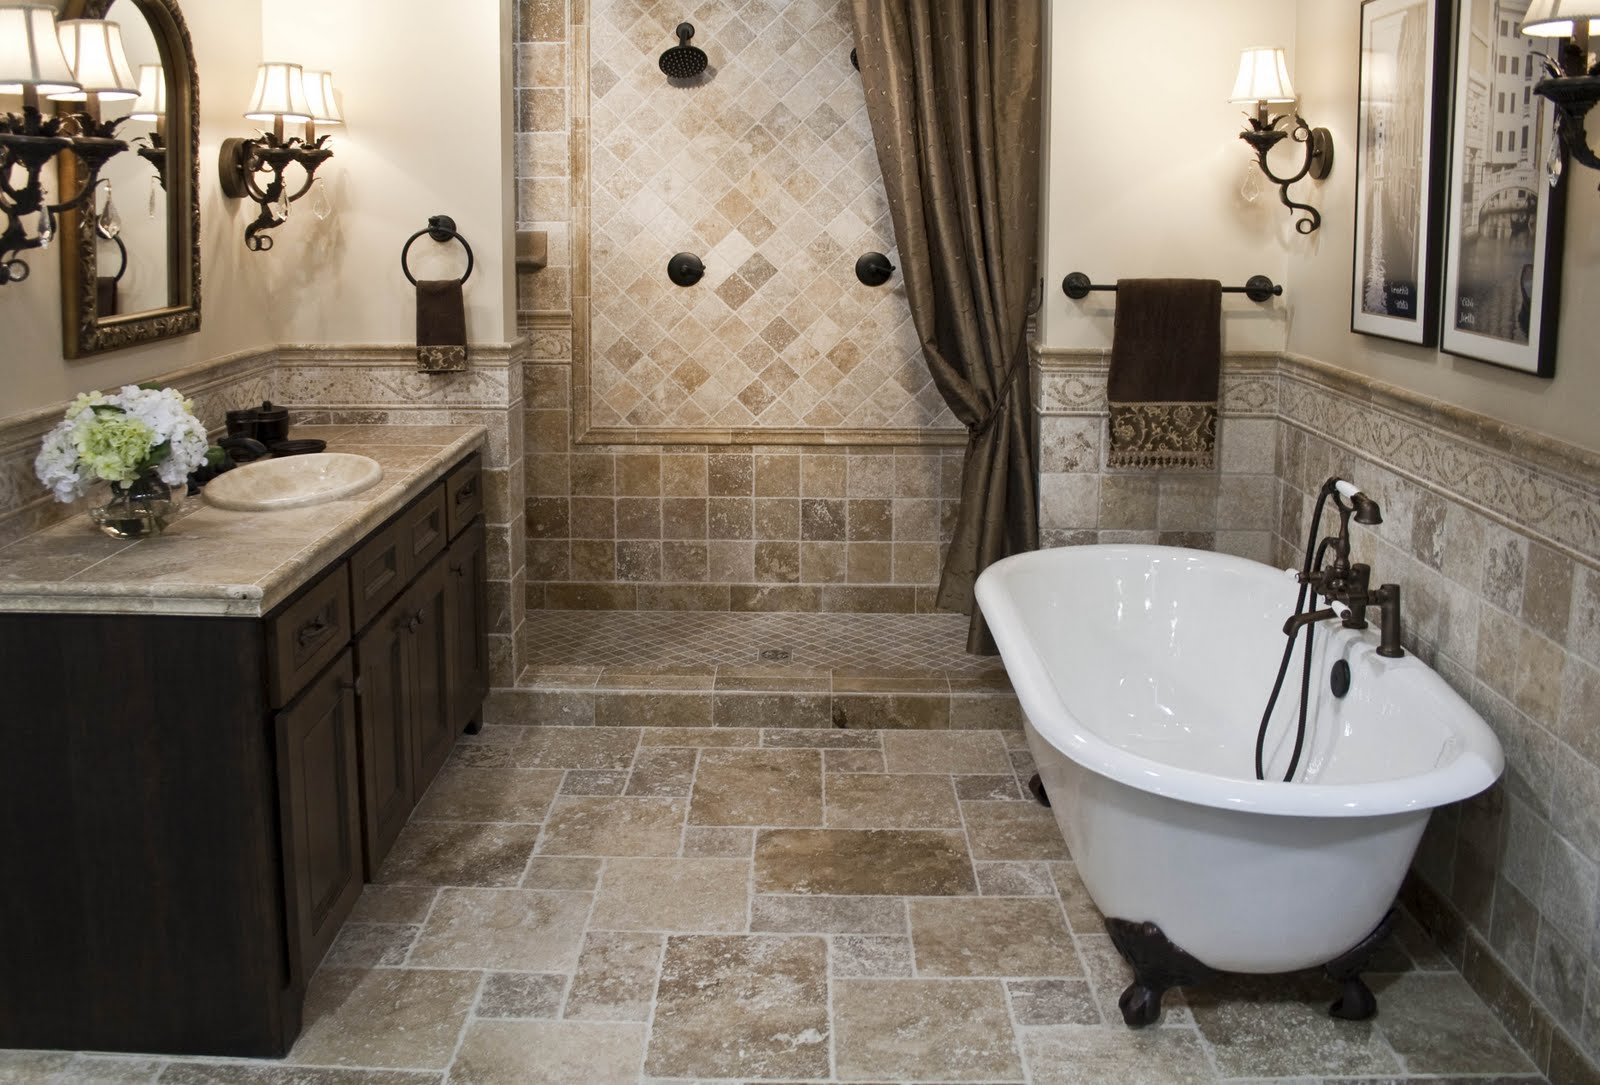 Tiny Bathroom Ideas Of The Top 20 Small Bathroom Design Ideas For 2014 Qnud